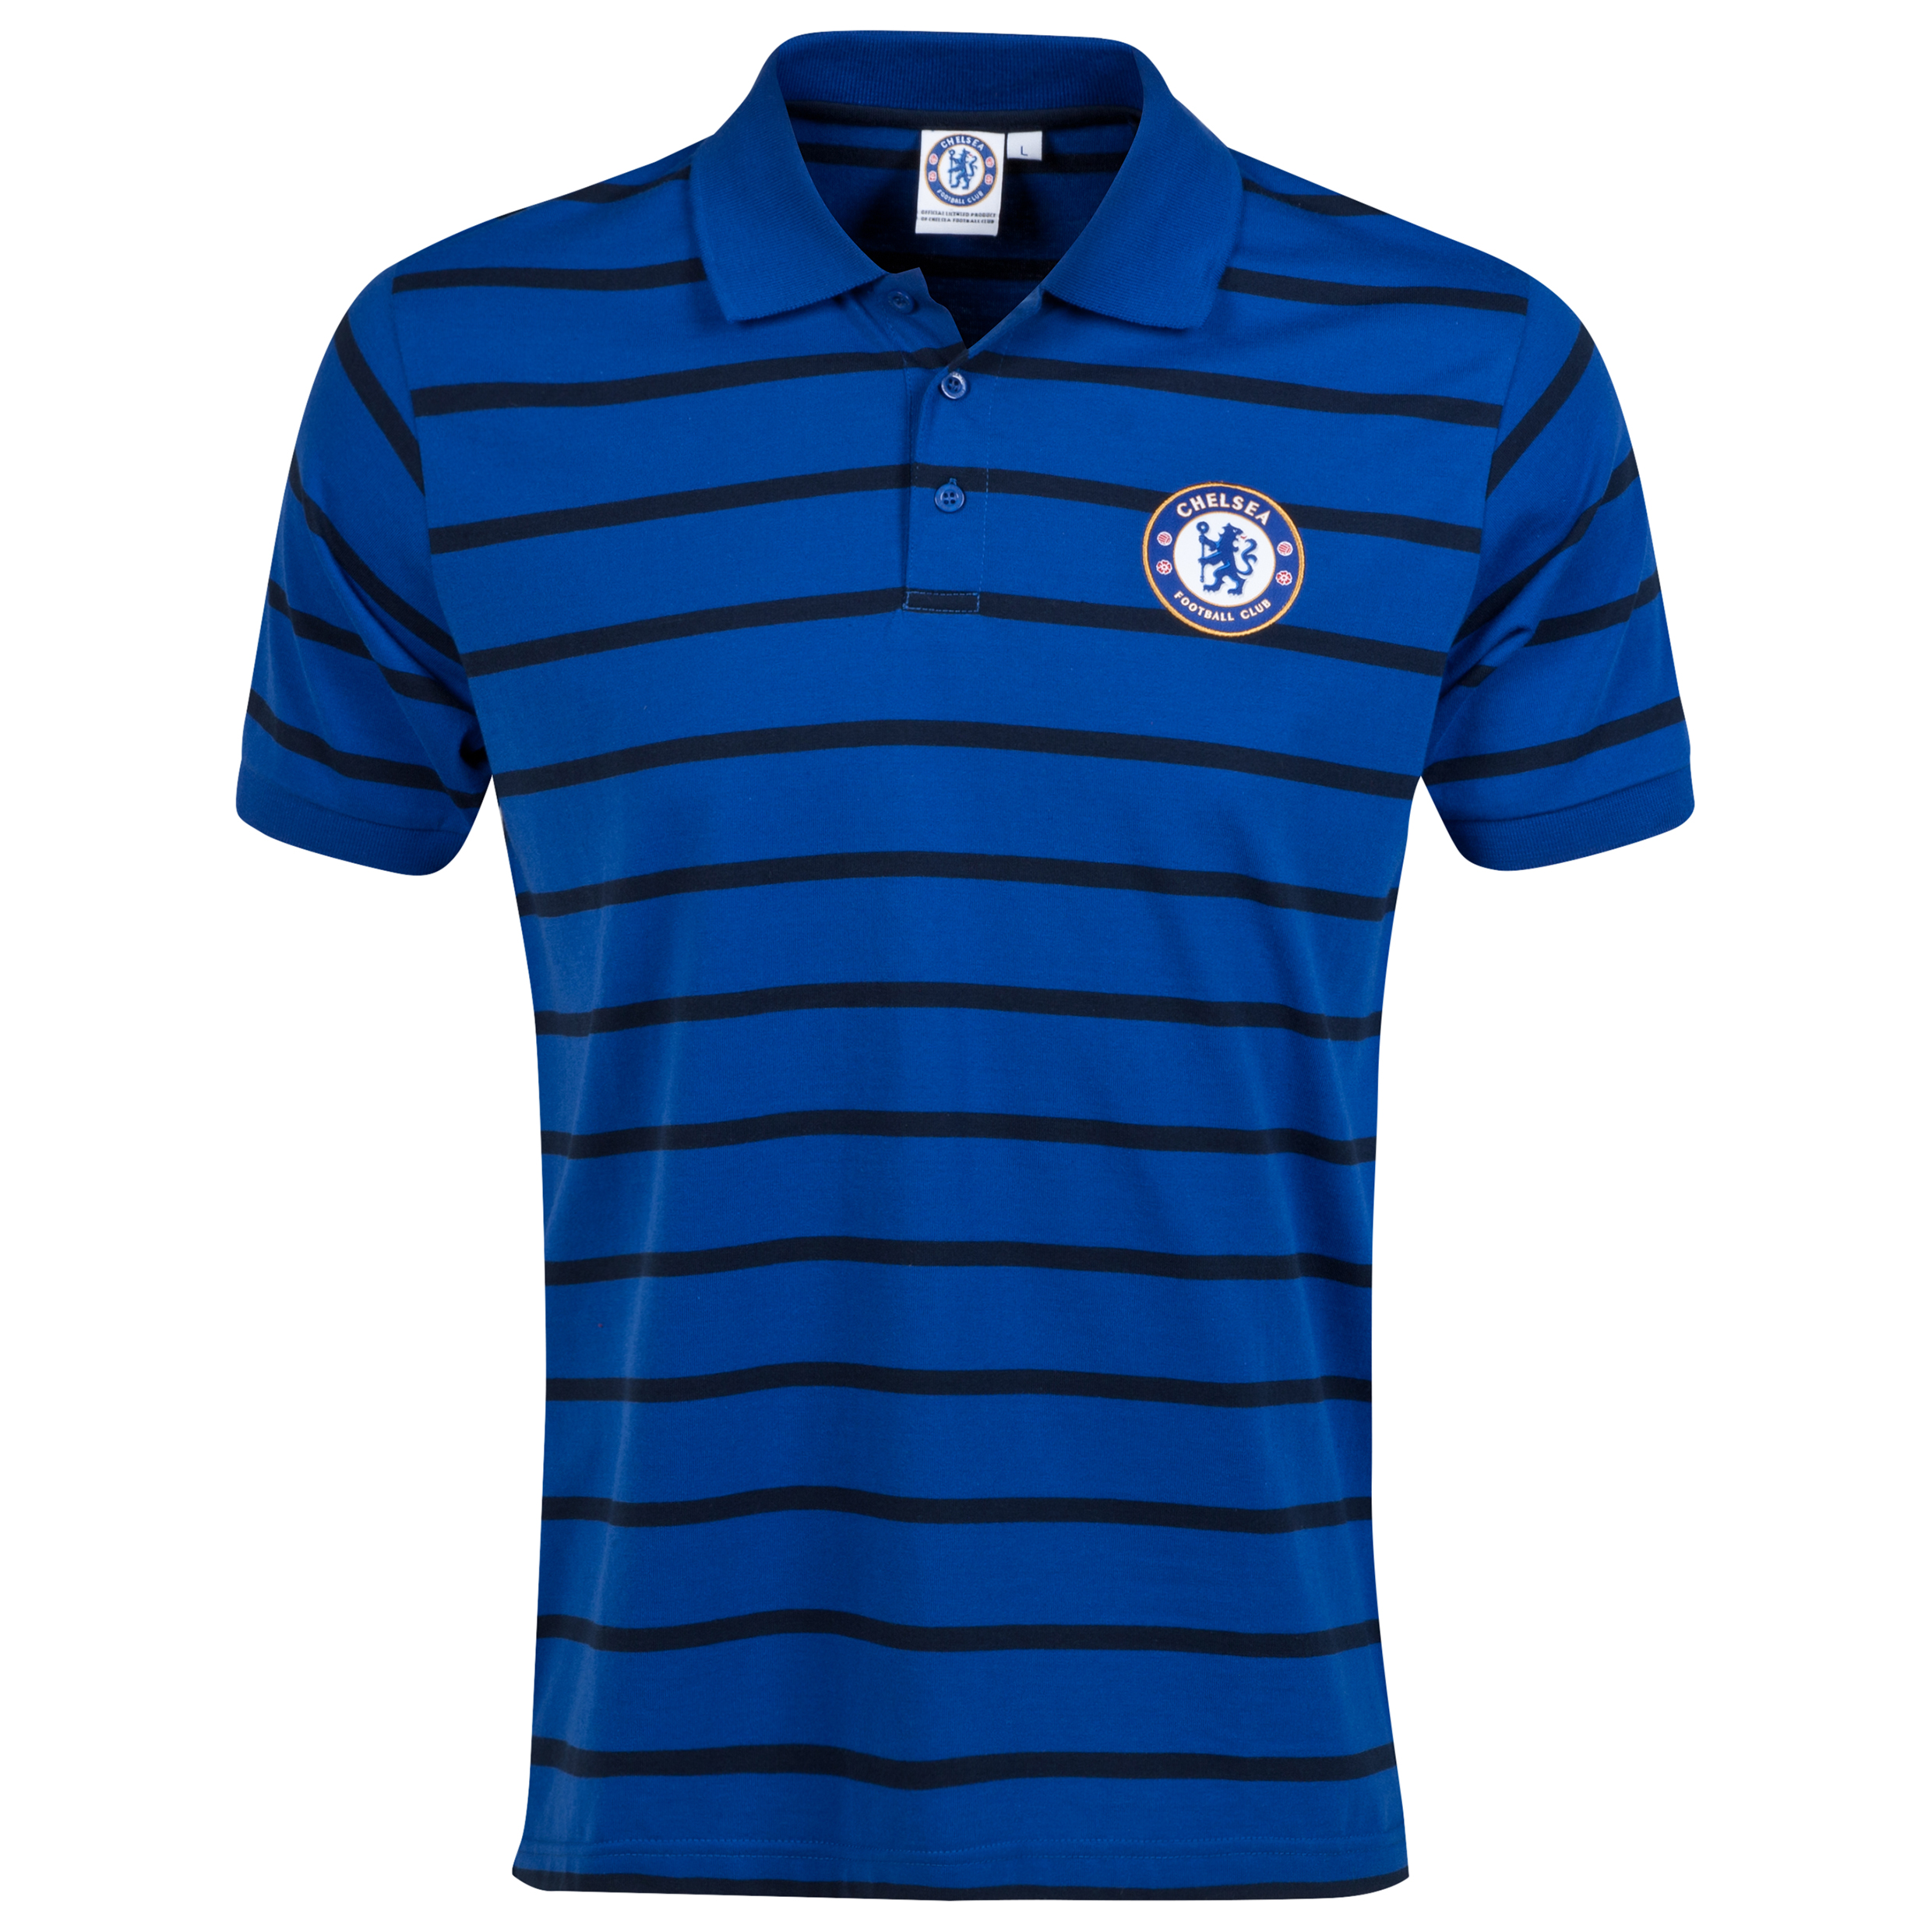 Chelsea Classic Striped Polo Shirt - Royal - Mens